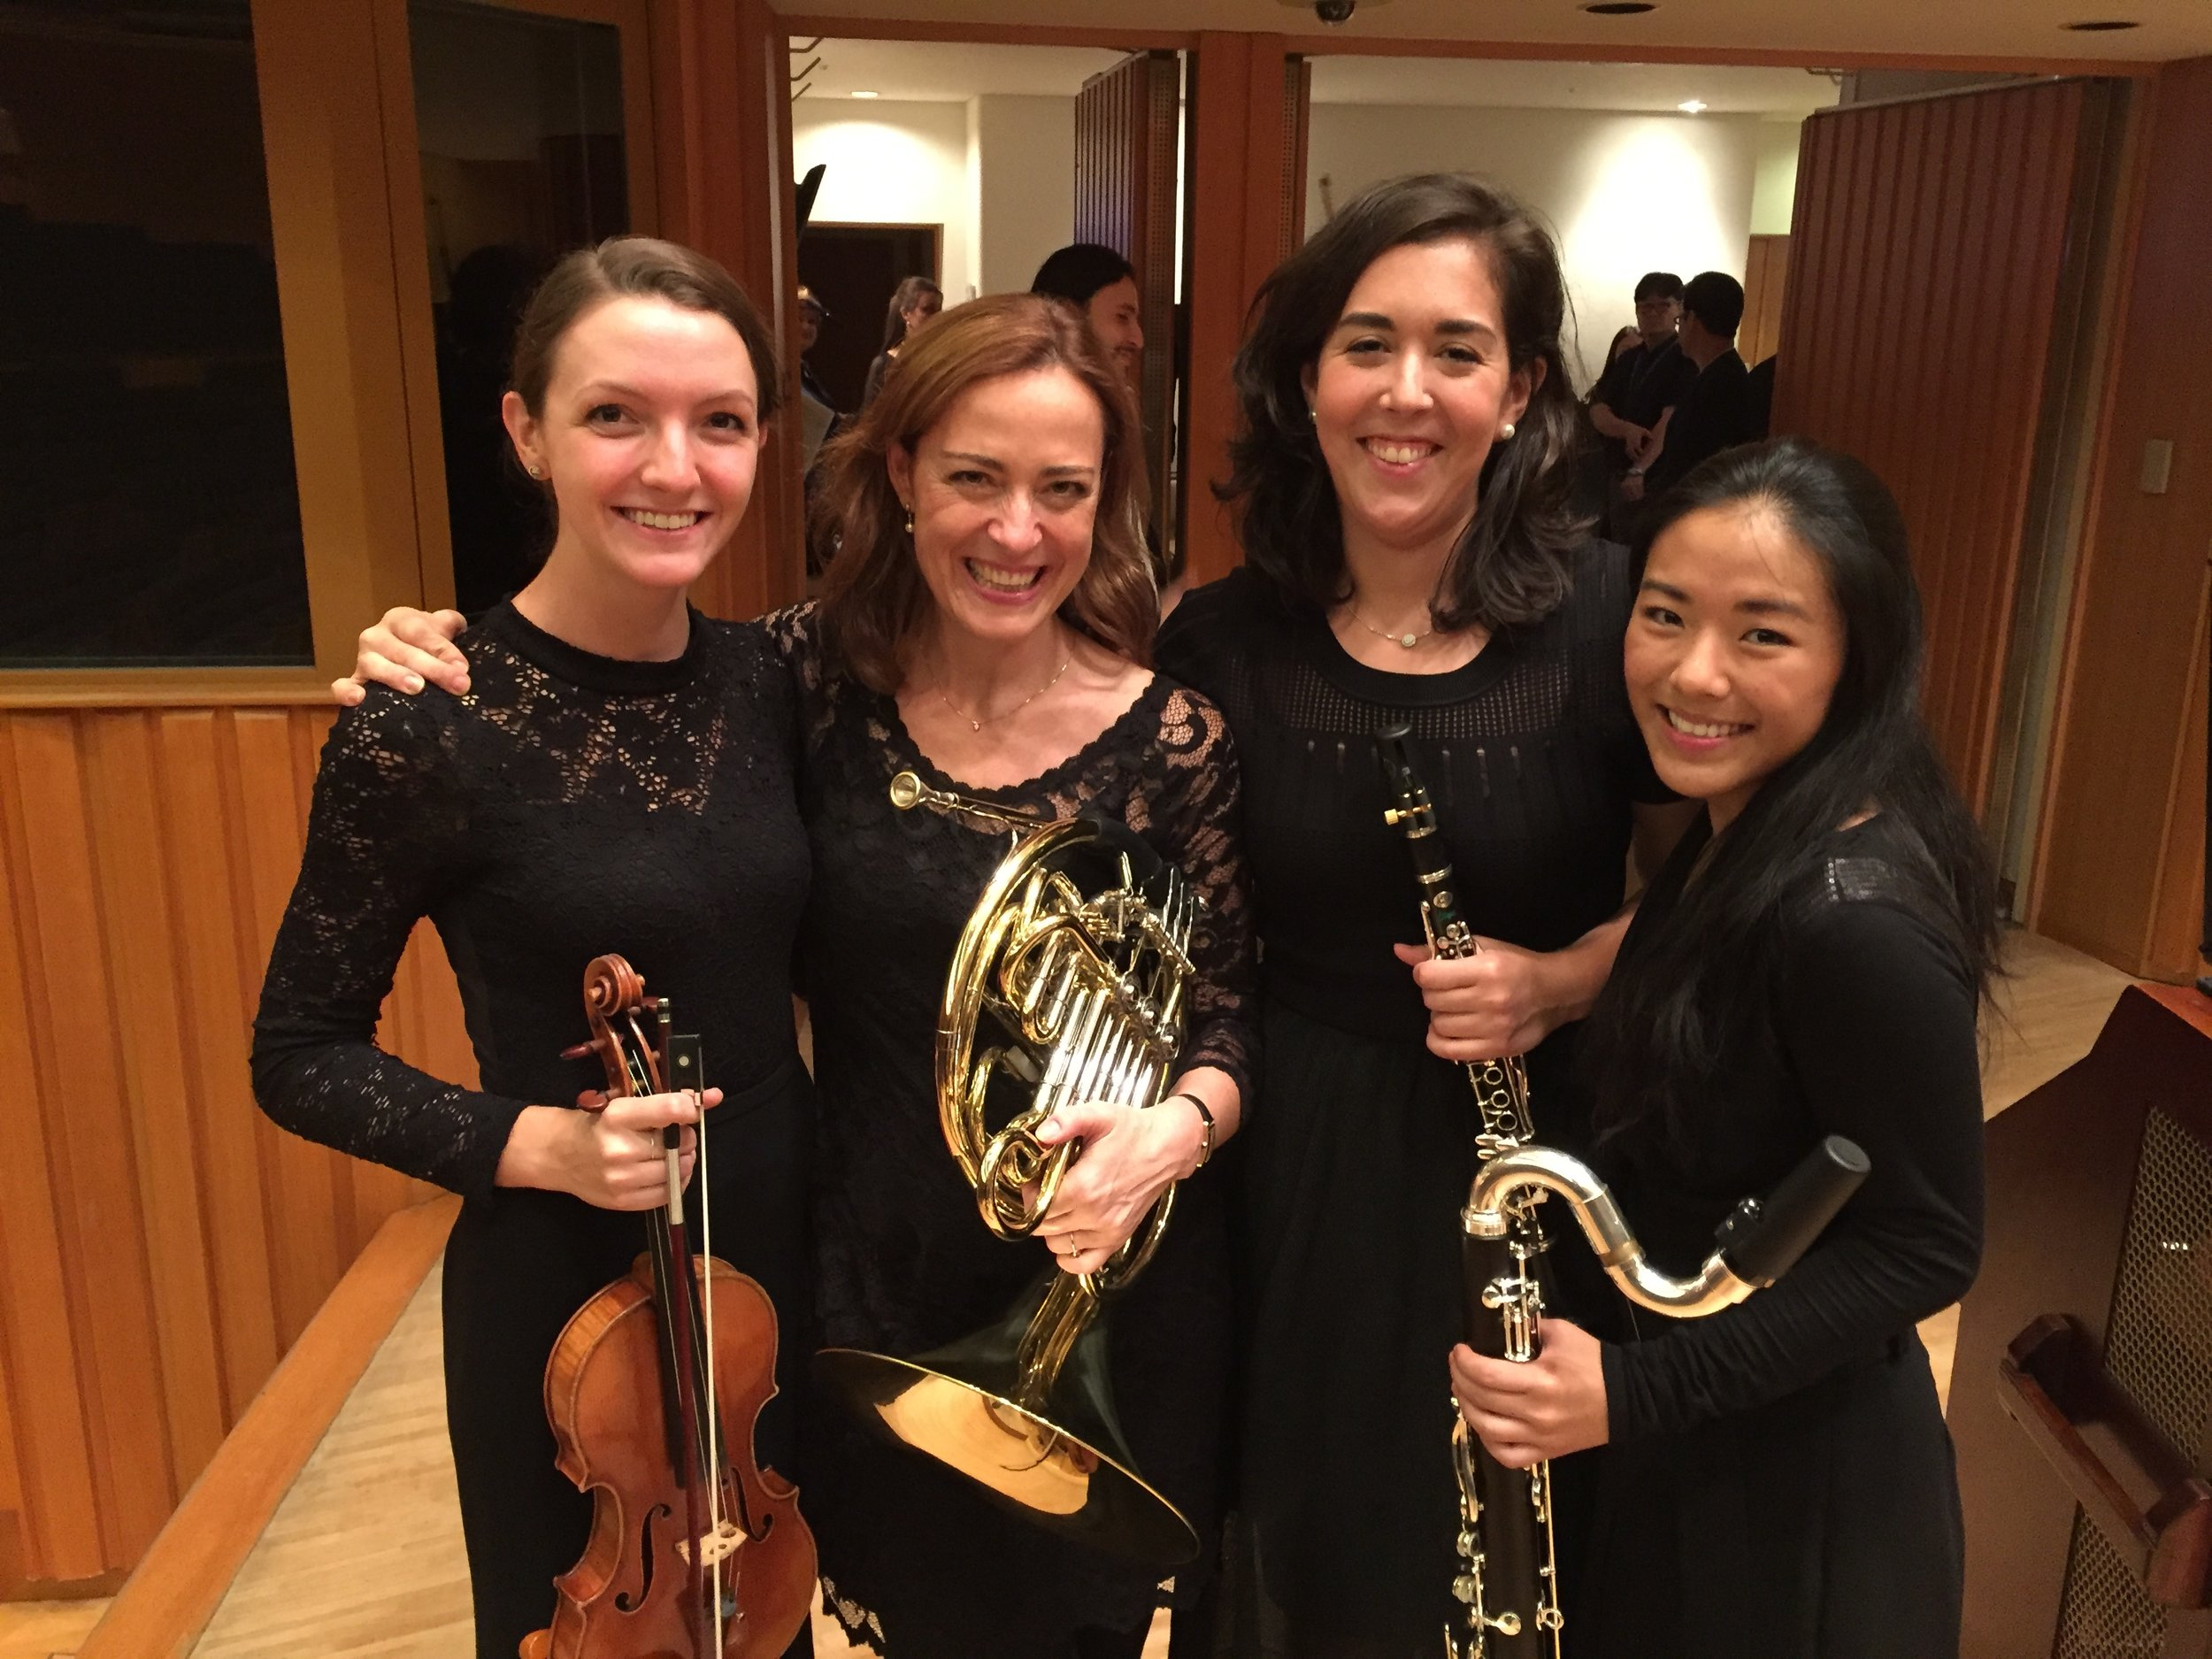 Pacific Music Festival 2017, after Program A concert. Pictured left to right: Natalie Gaynor (Houston Grand Opera), Sarah Willis (faculty, Berlin Philharmonic), Lucy Abrams, Natalie Jen Hoe (Florida Orchestra)